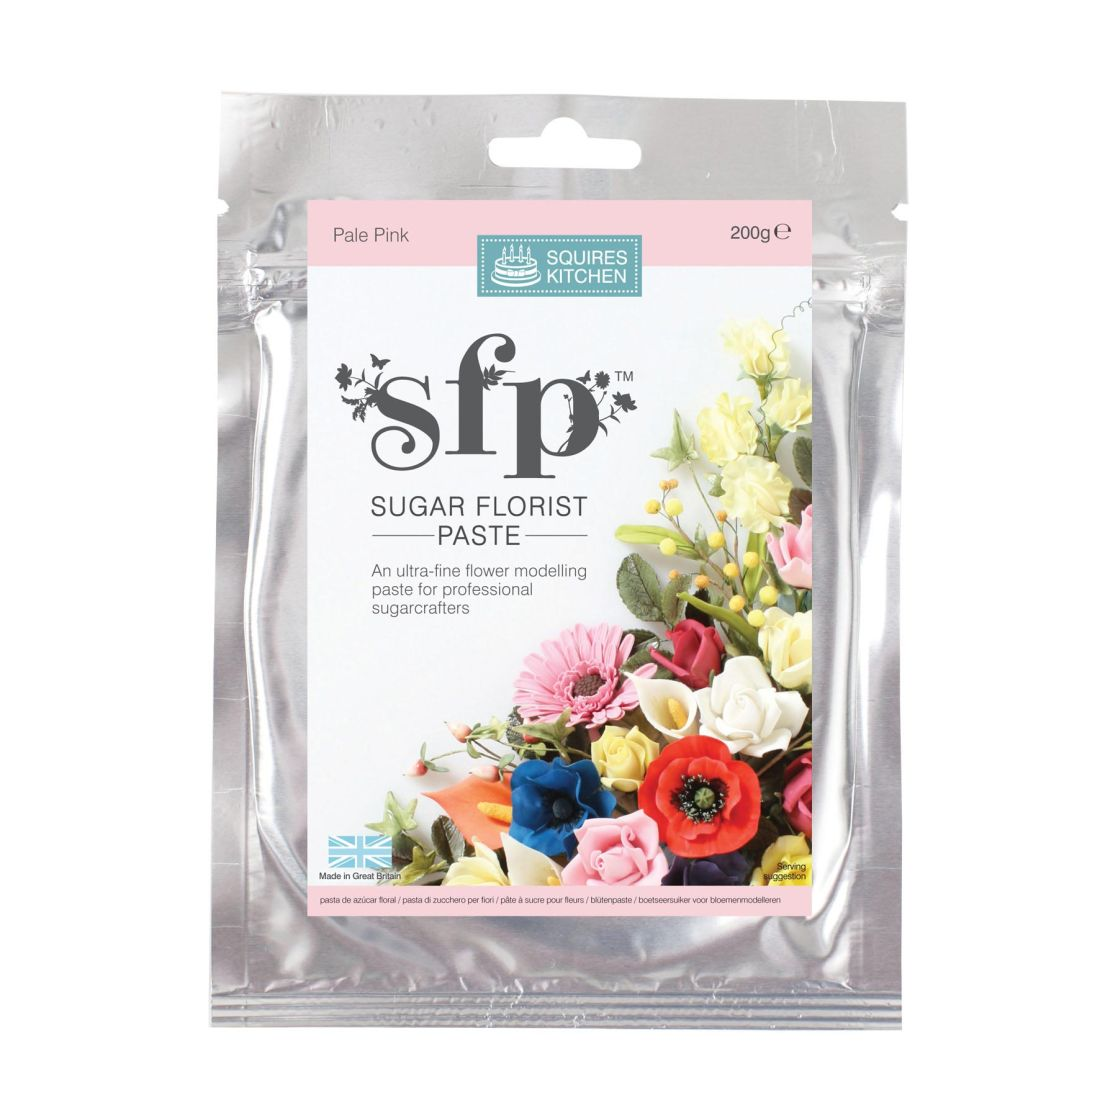 SK SFP Sugar Florist Paste Pale Pink 200g | Squires Kitchen Shop